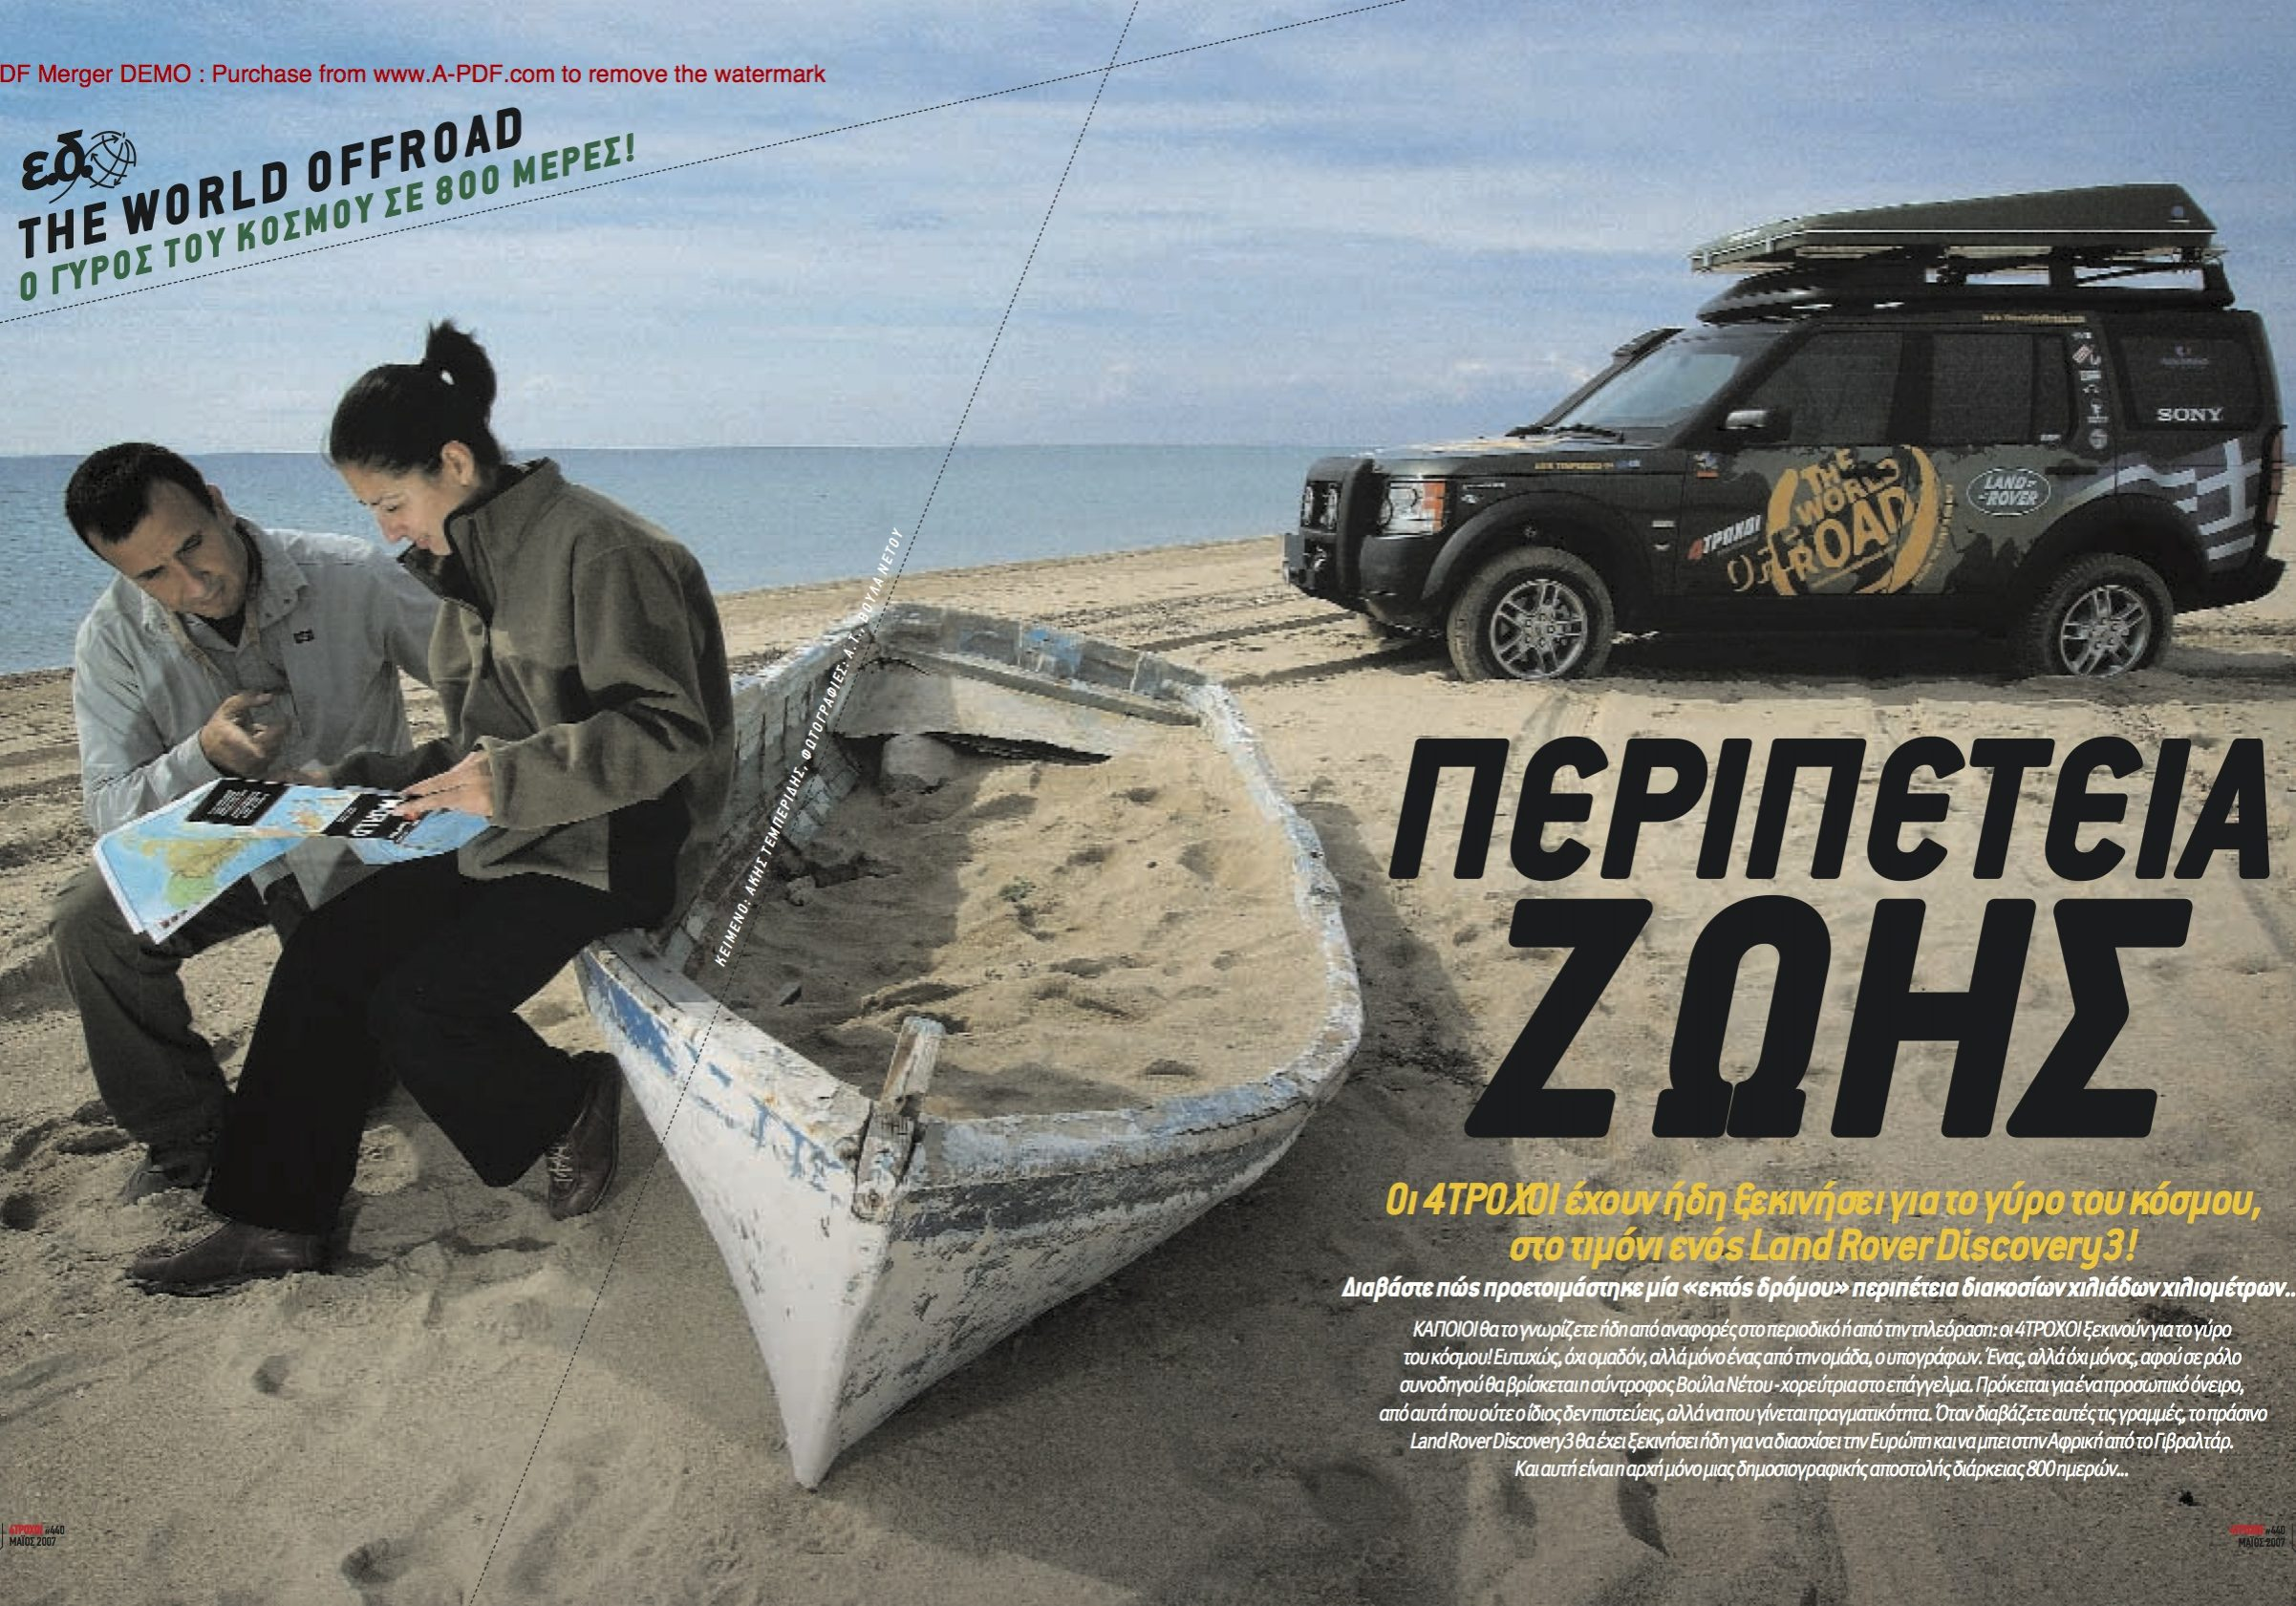 4Wheels magazine, Greece, May 2007